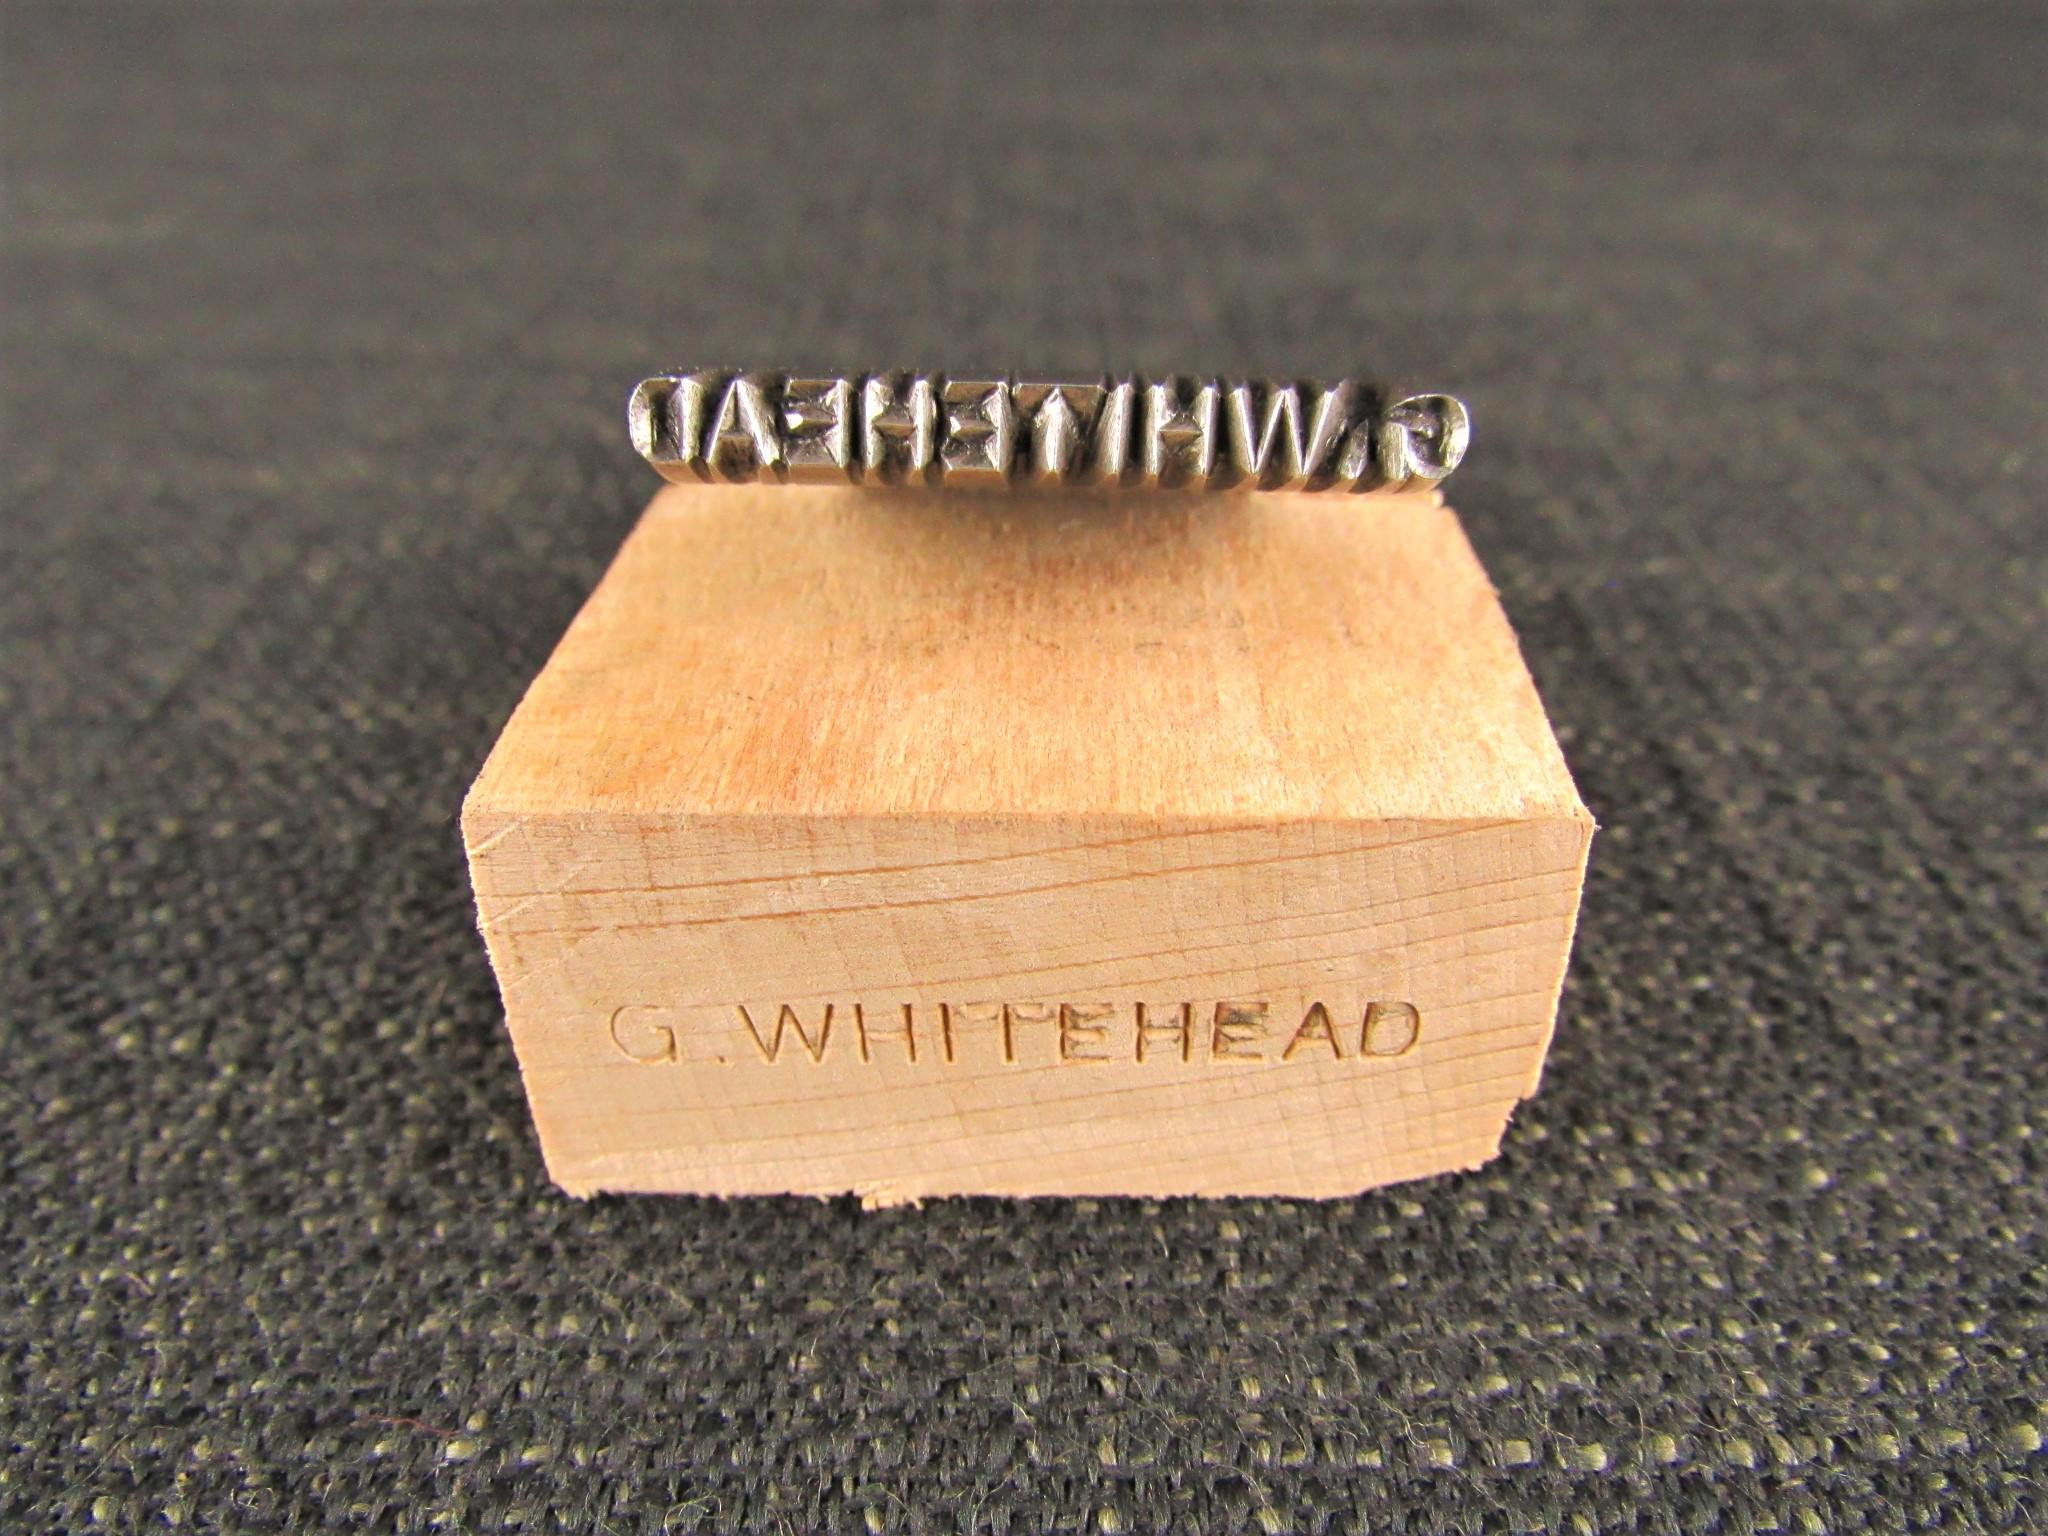 G WHITEHEAD Name Stamp - Punch or Mark Maker